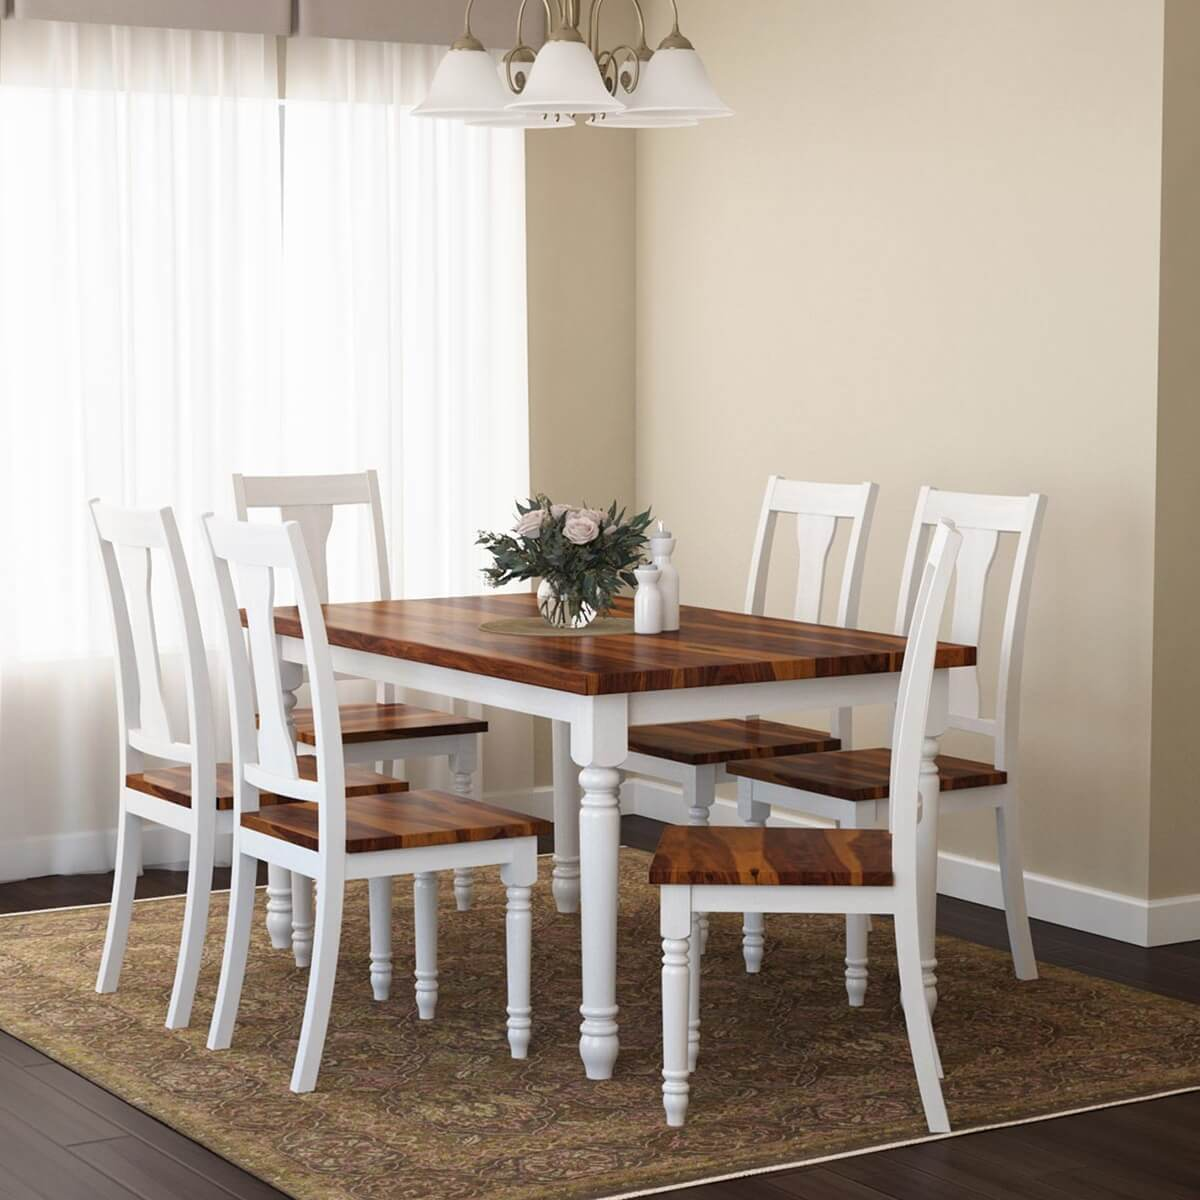 Proberta Two Tone Solid Wood Rustic Dining Table and Chair Set